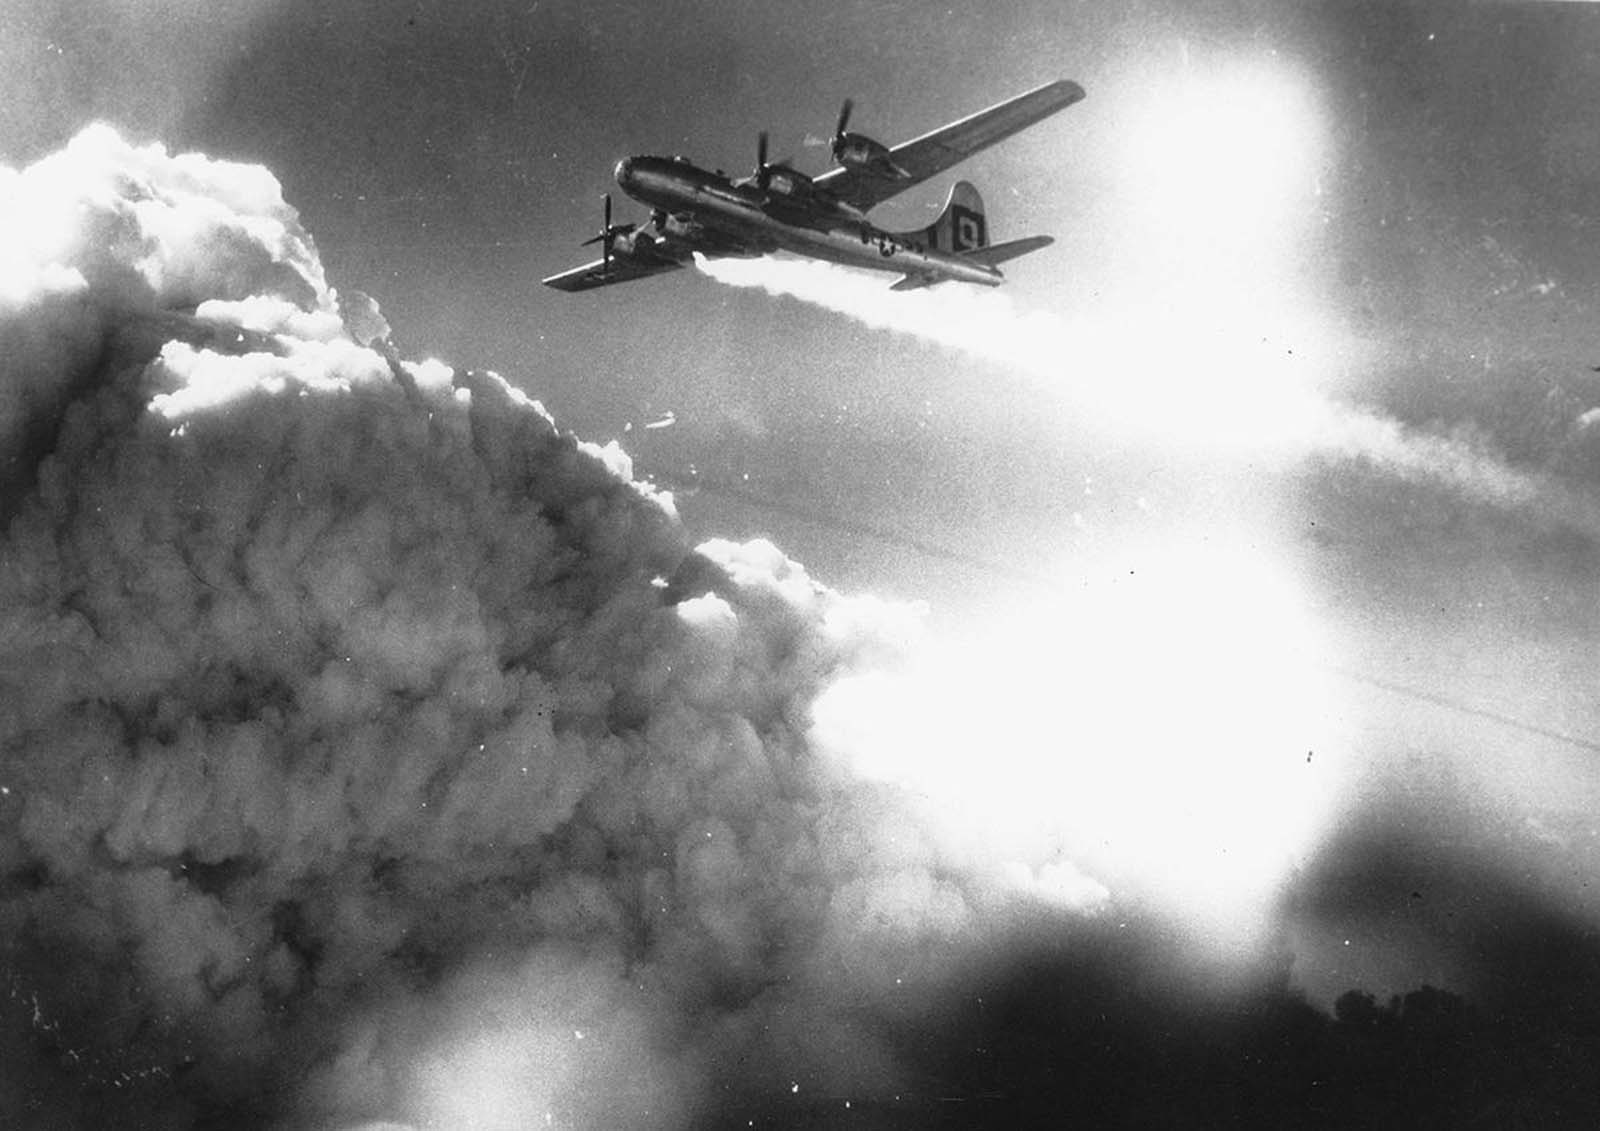 In flight over the Japanese city of Kobe, a U.S. Army Air Forces B-29 Superfortress trails smoke and fire, on July 17, 1945.